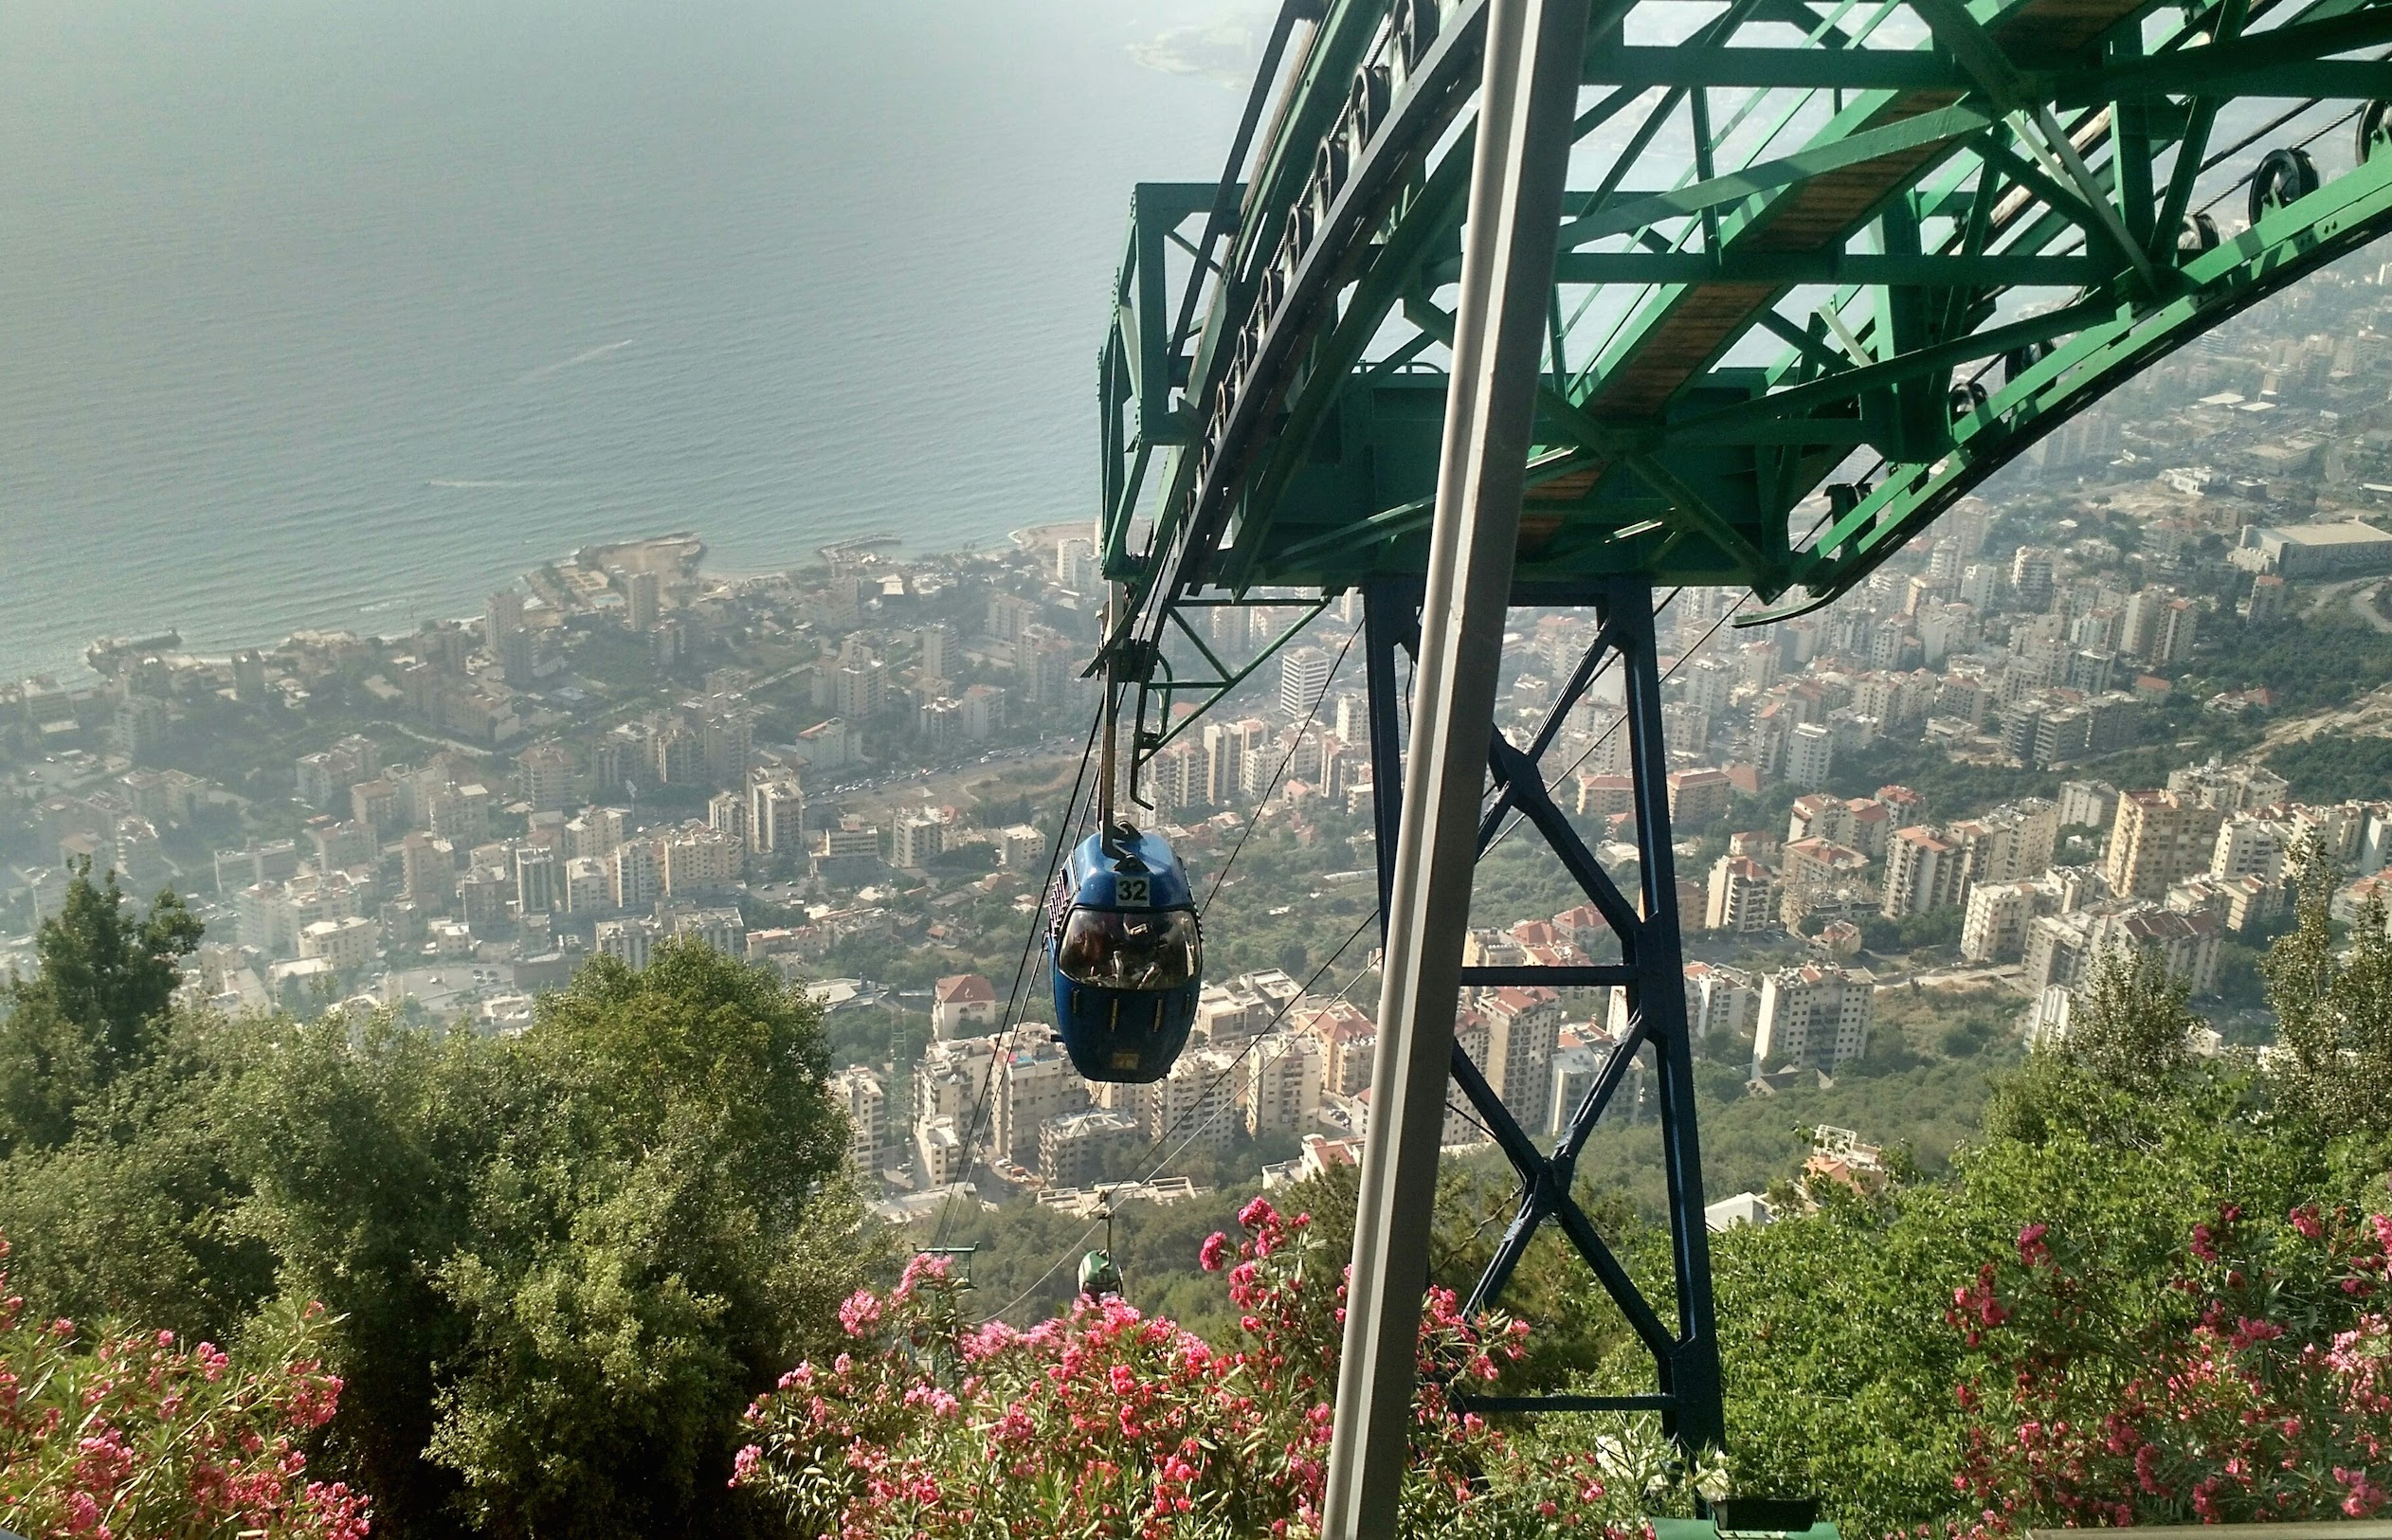 The teleferique to Harissa